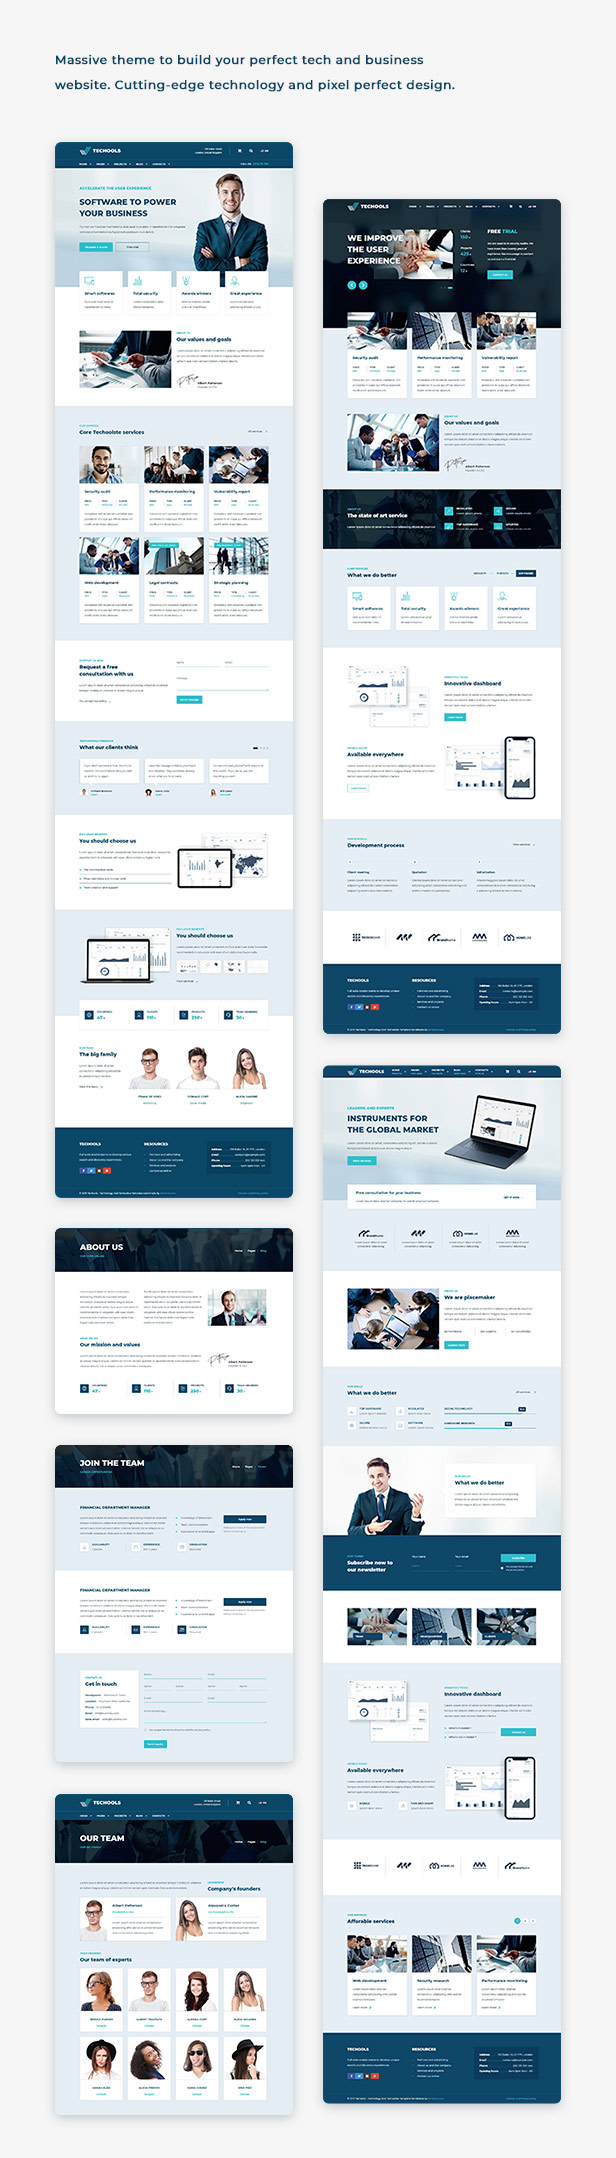 Execoore - Tech And Business Theme - 1